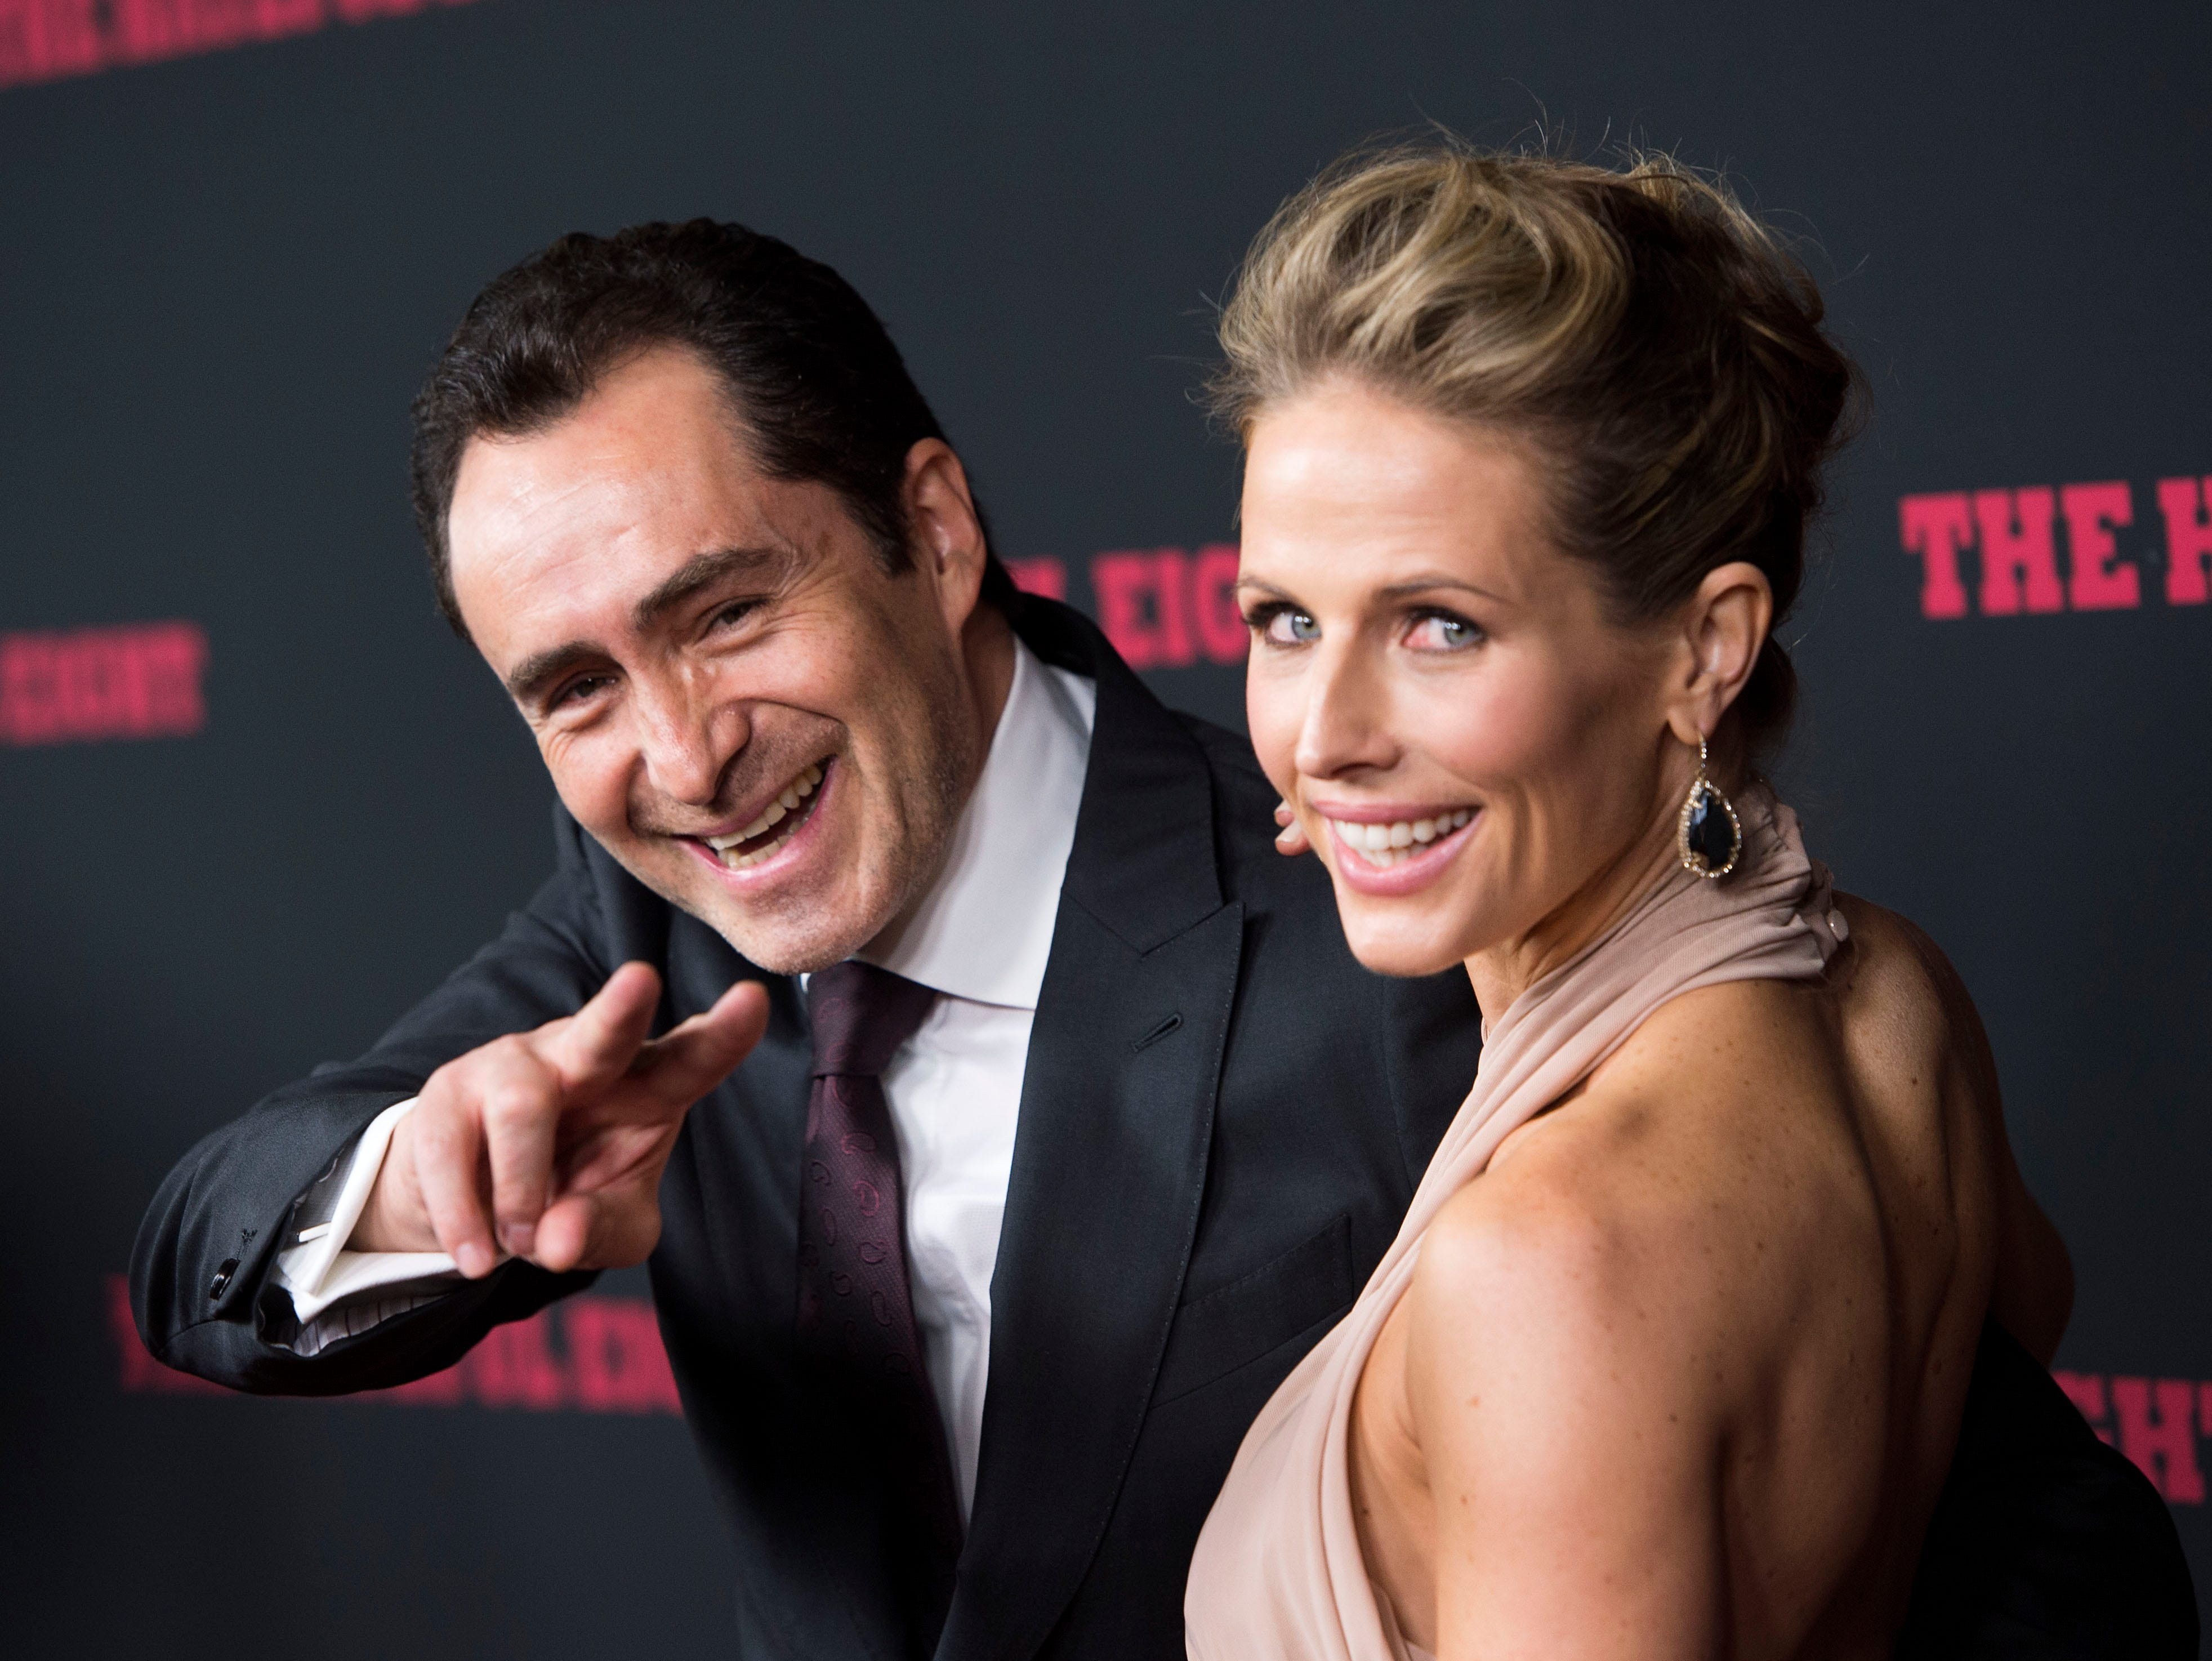 """Demian Bichir and Stefanie Sherk  attend the premiere of his film """"The Hateful Eight"""" on Dec. 7, 2015, in Hollywood, California."""